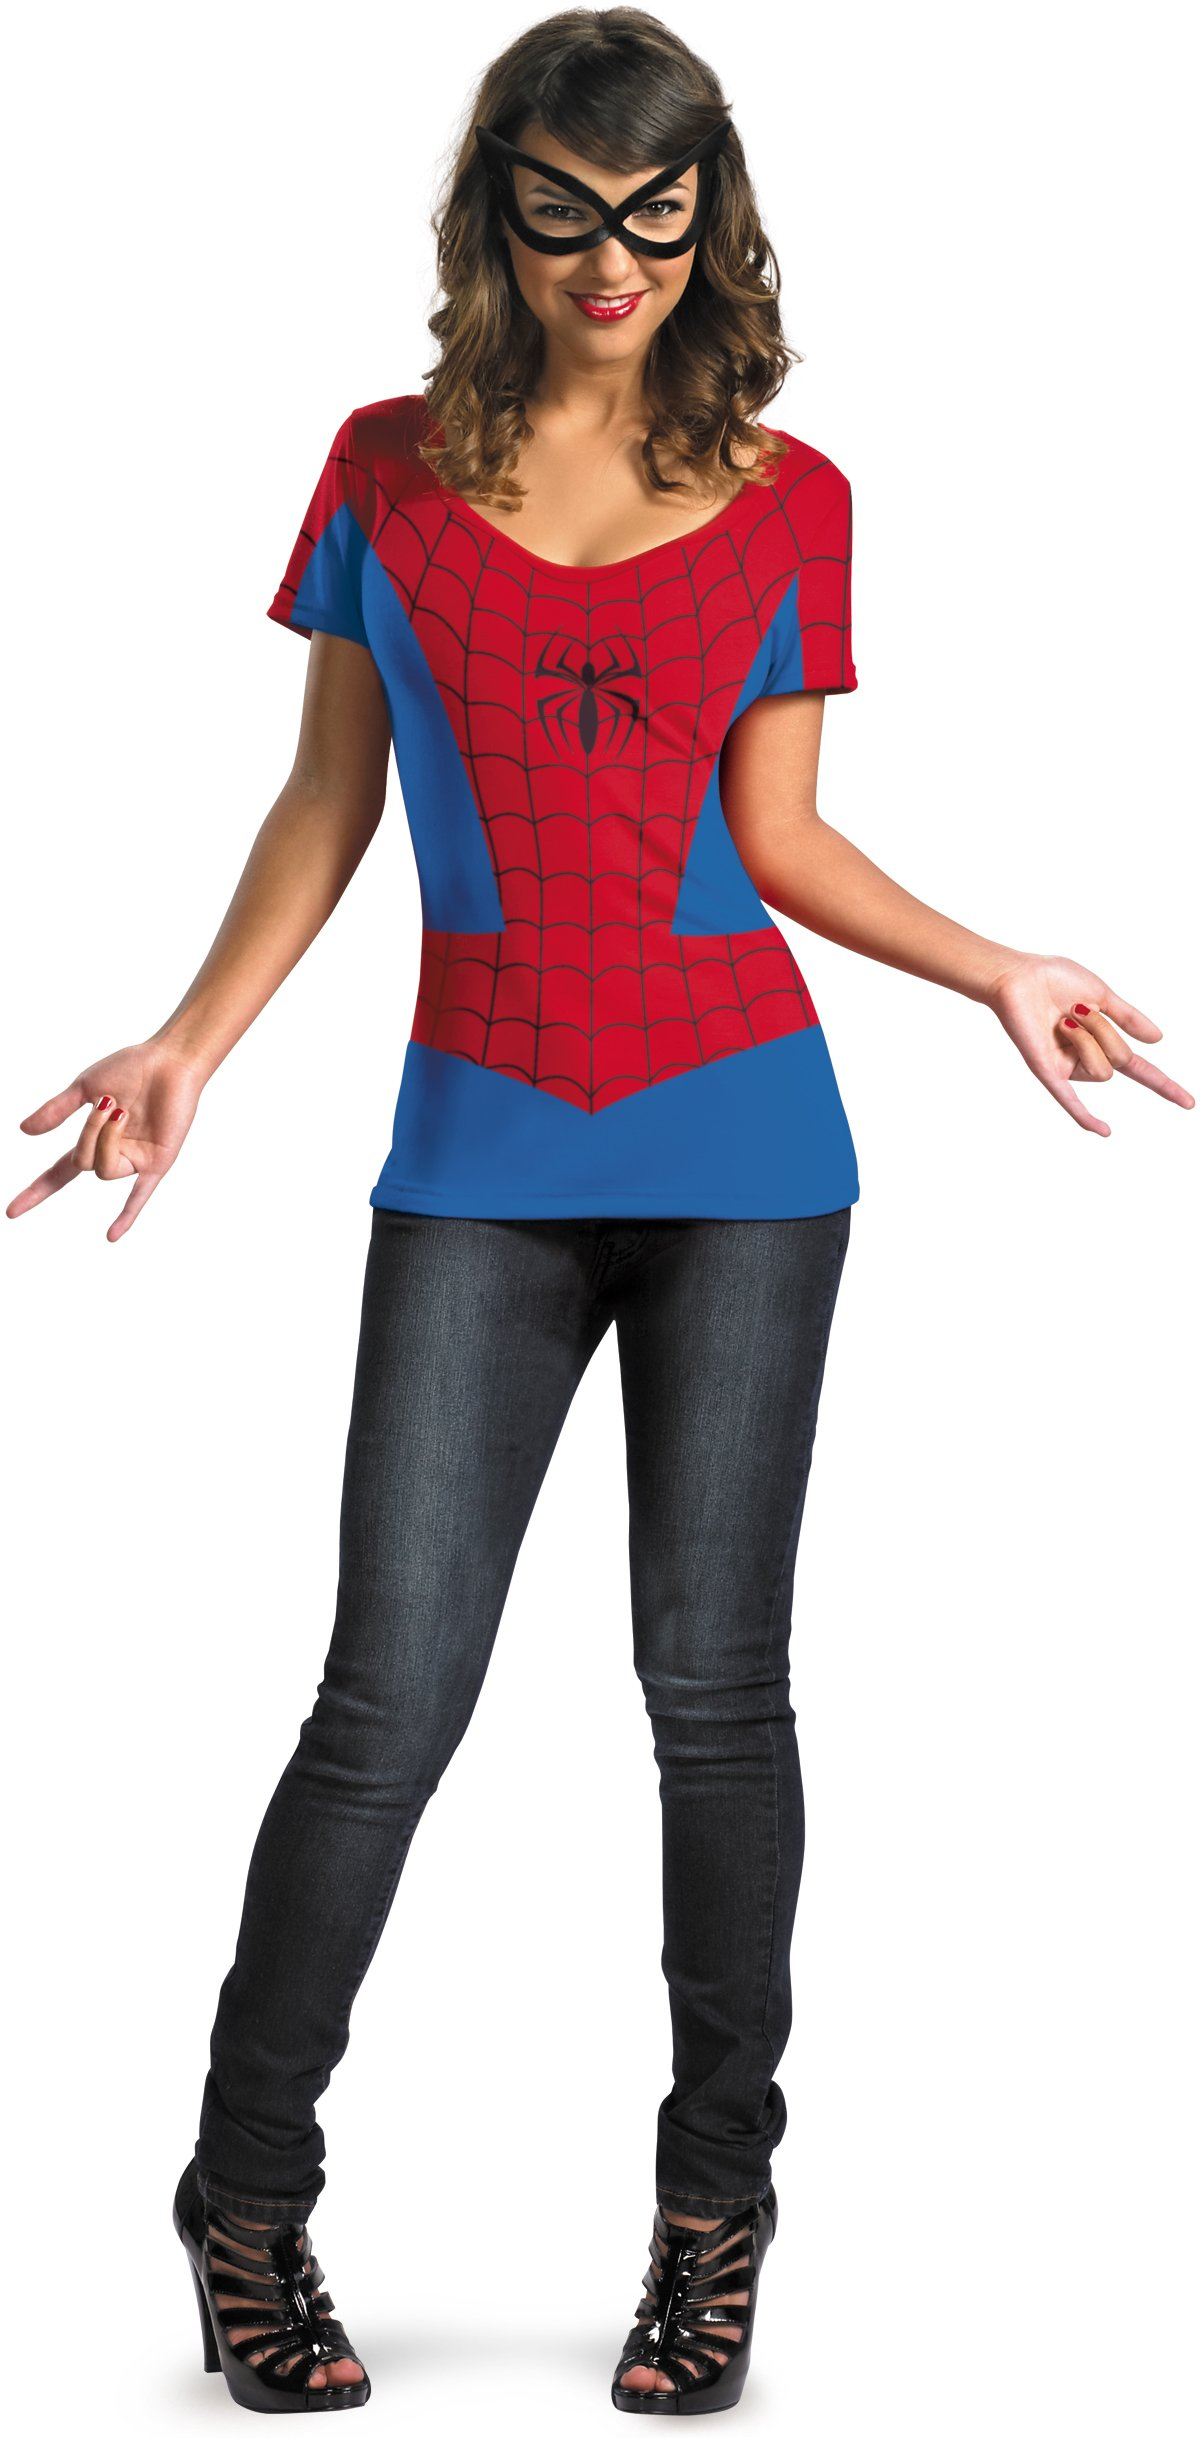 Spider-Girl T-Shirt And Mask Adult Costume Set